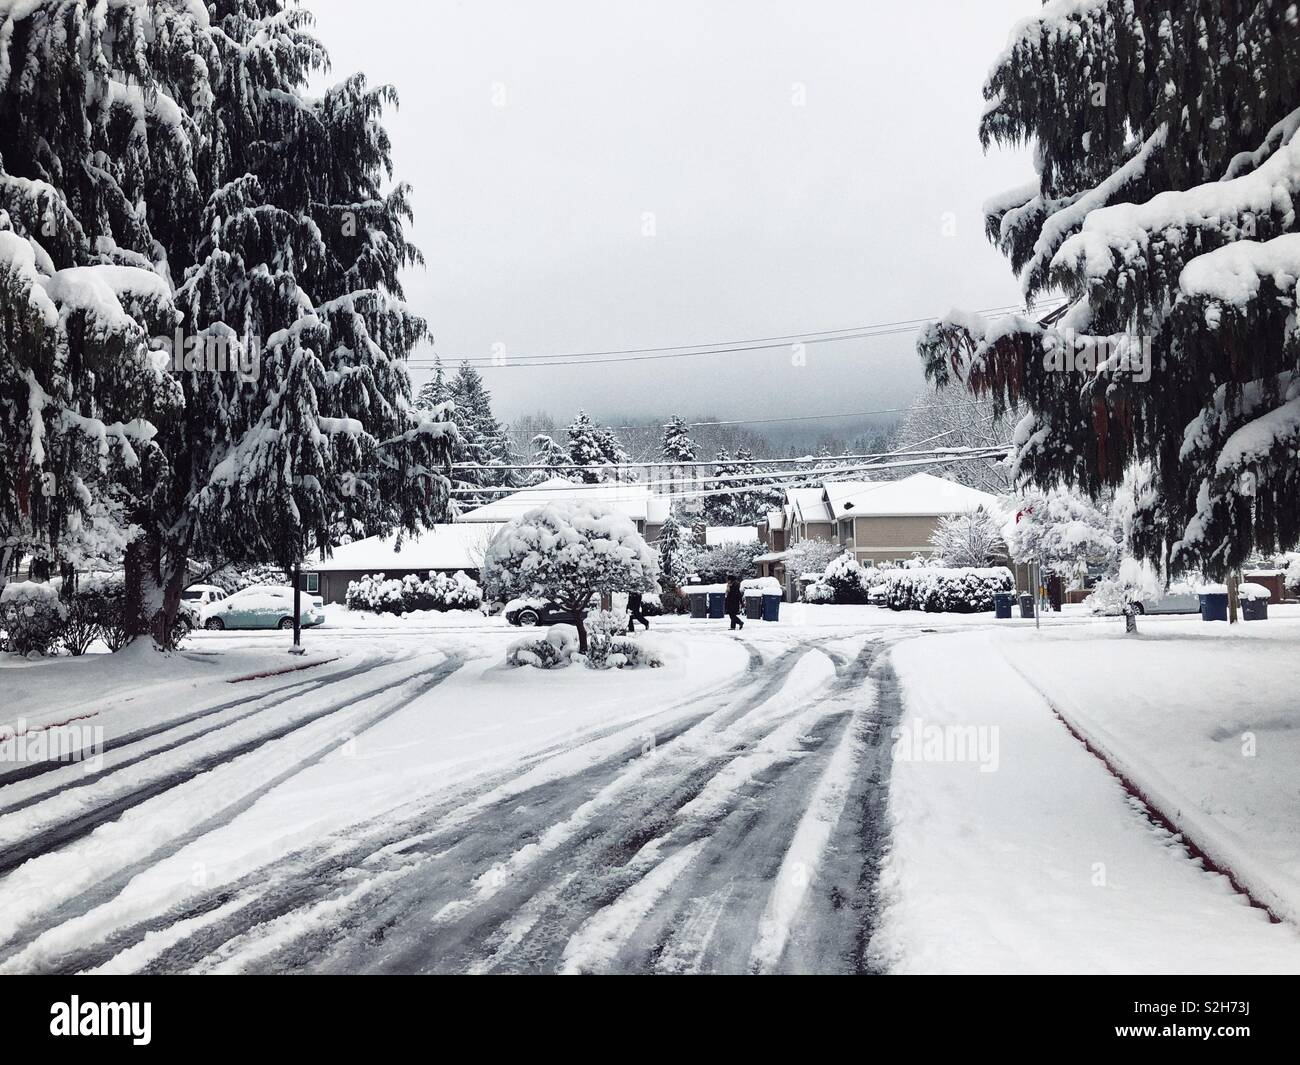 First snow of the season in Issaquah, WA - Stock Image